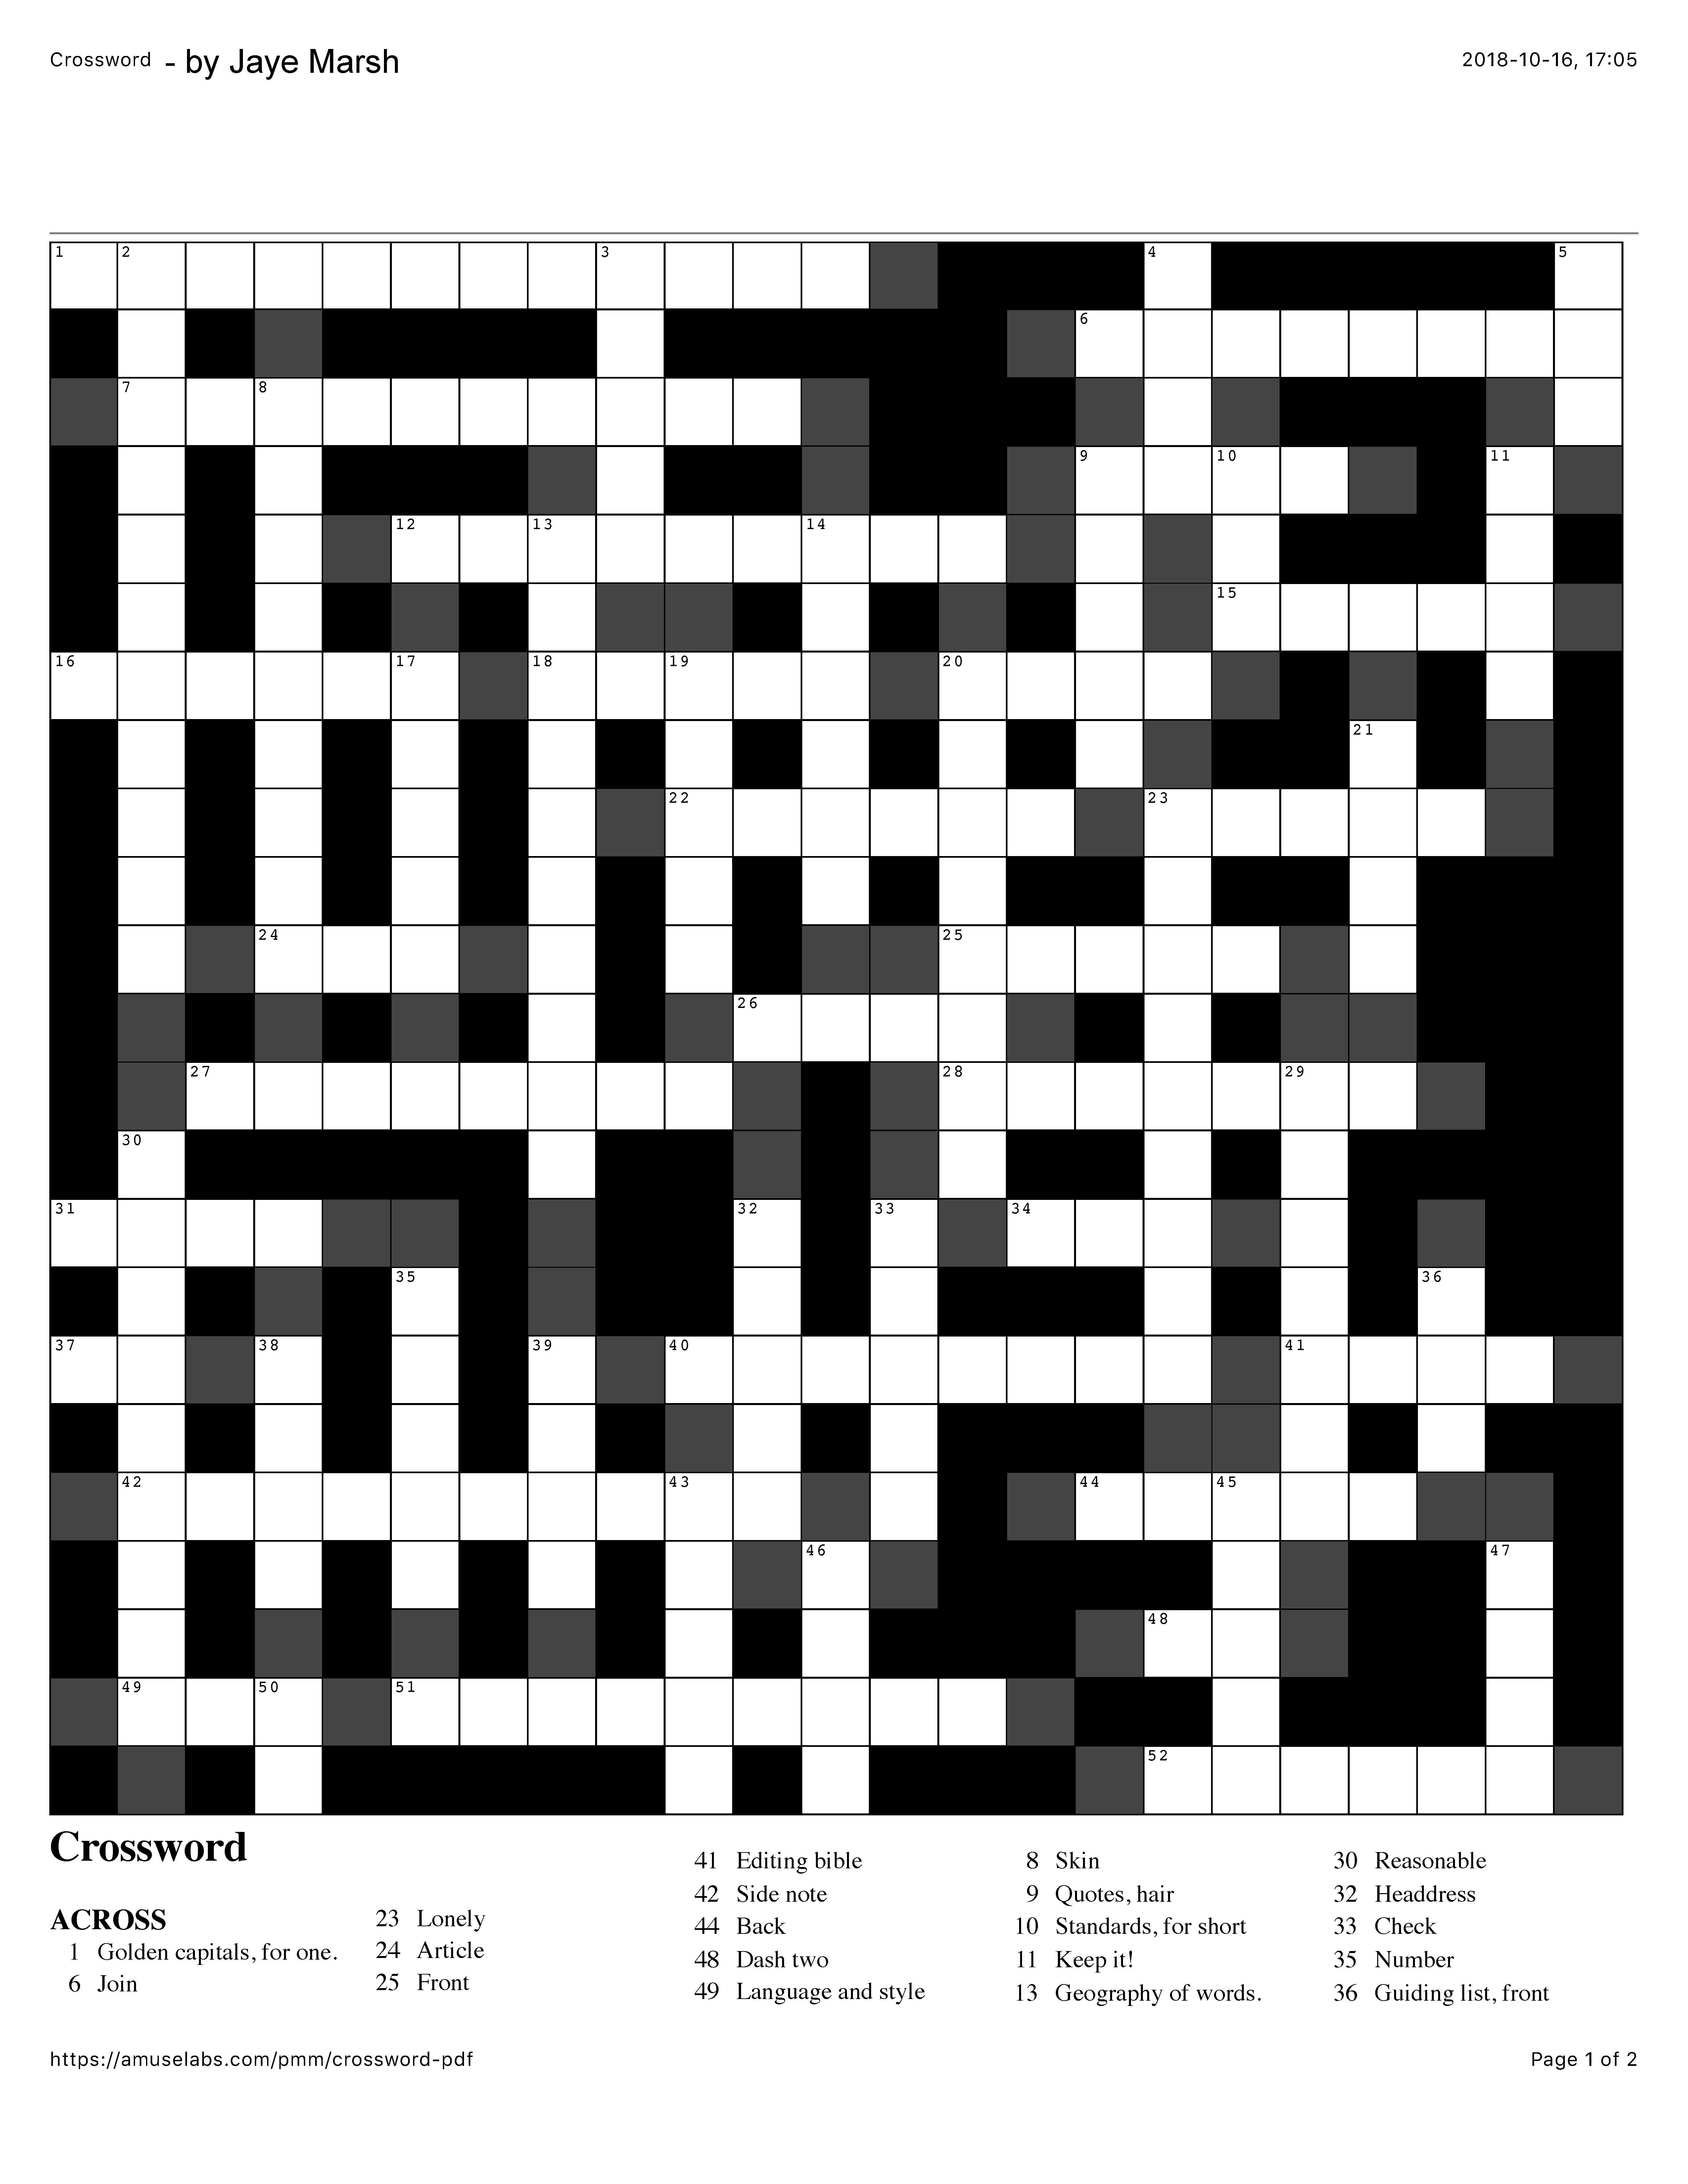 Snapshot of crossword puzzle